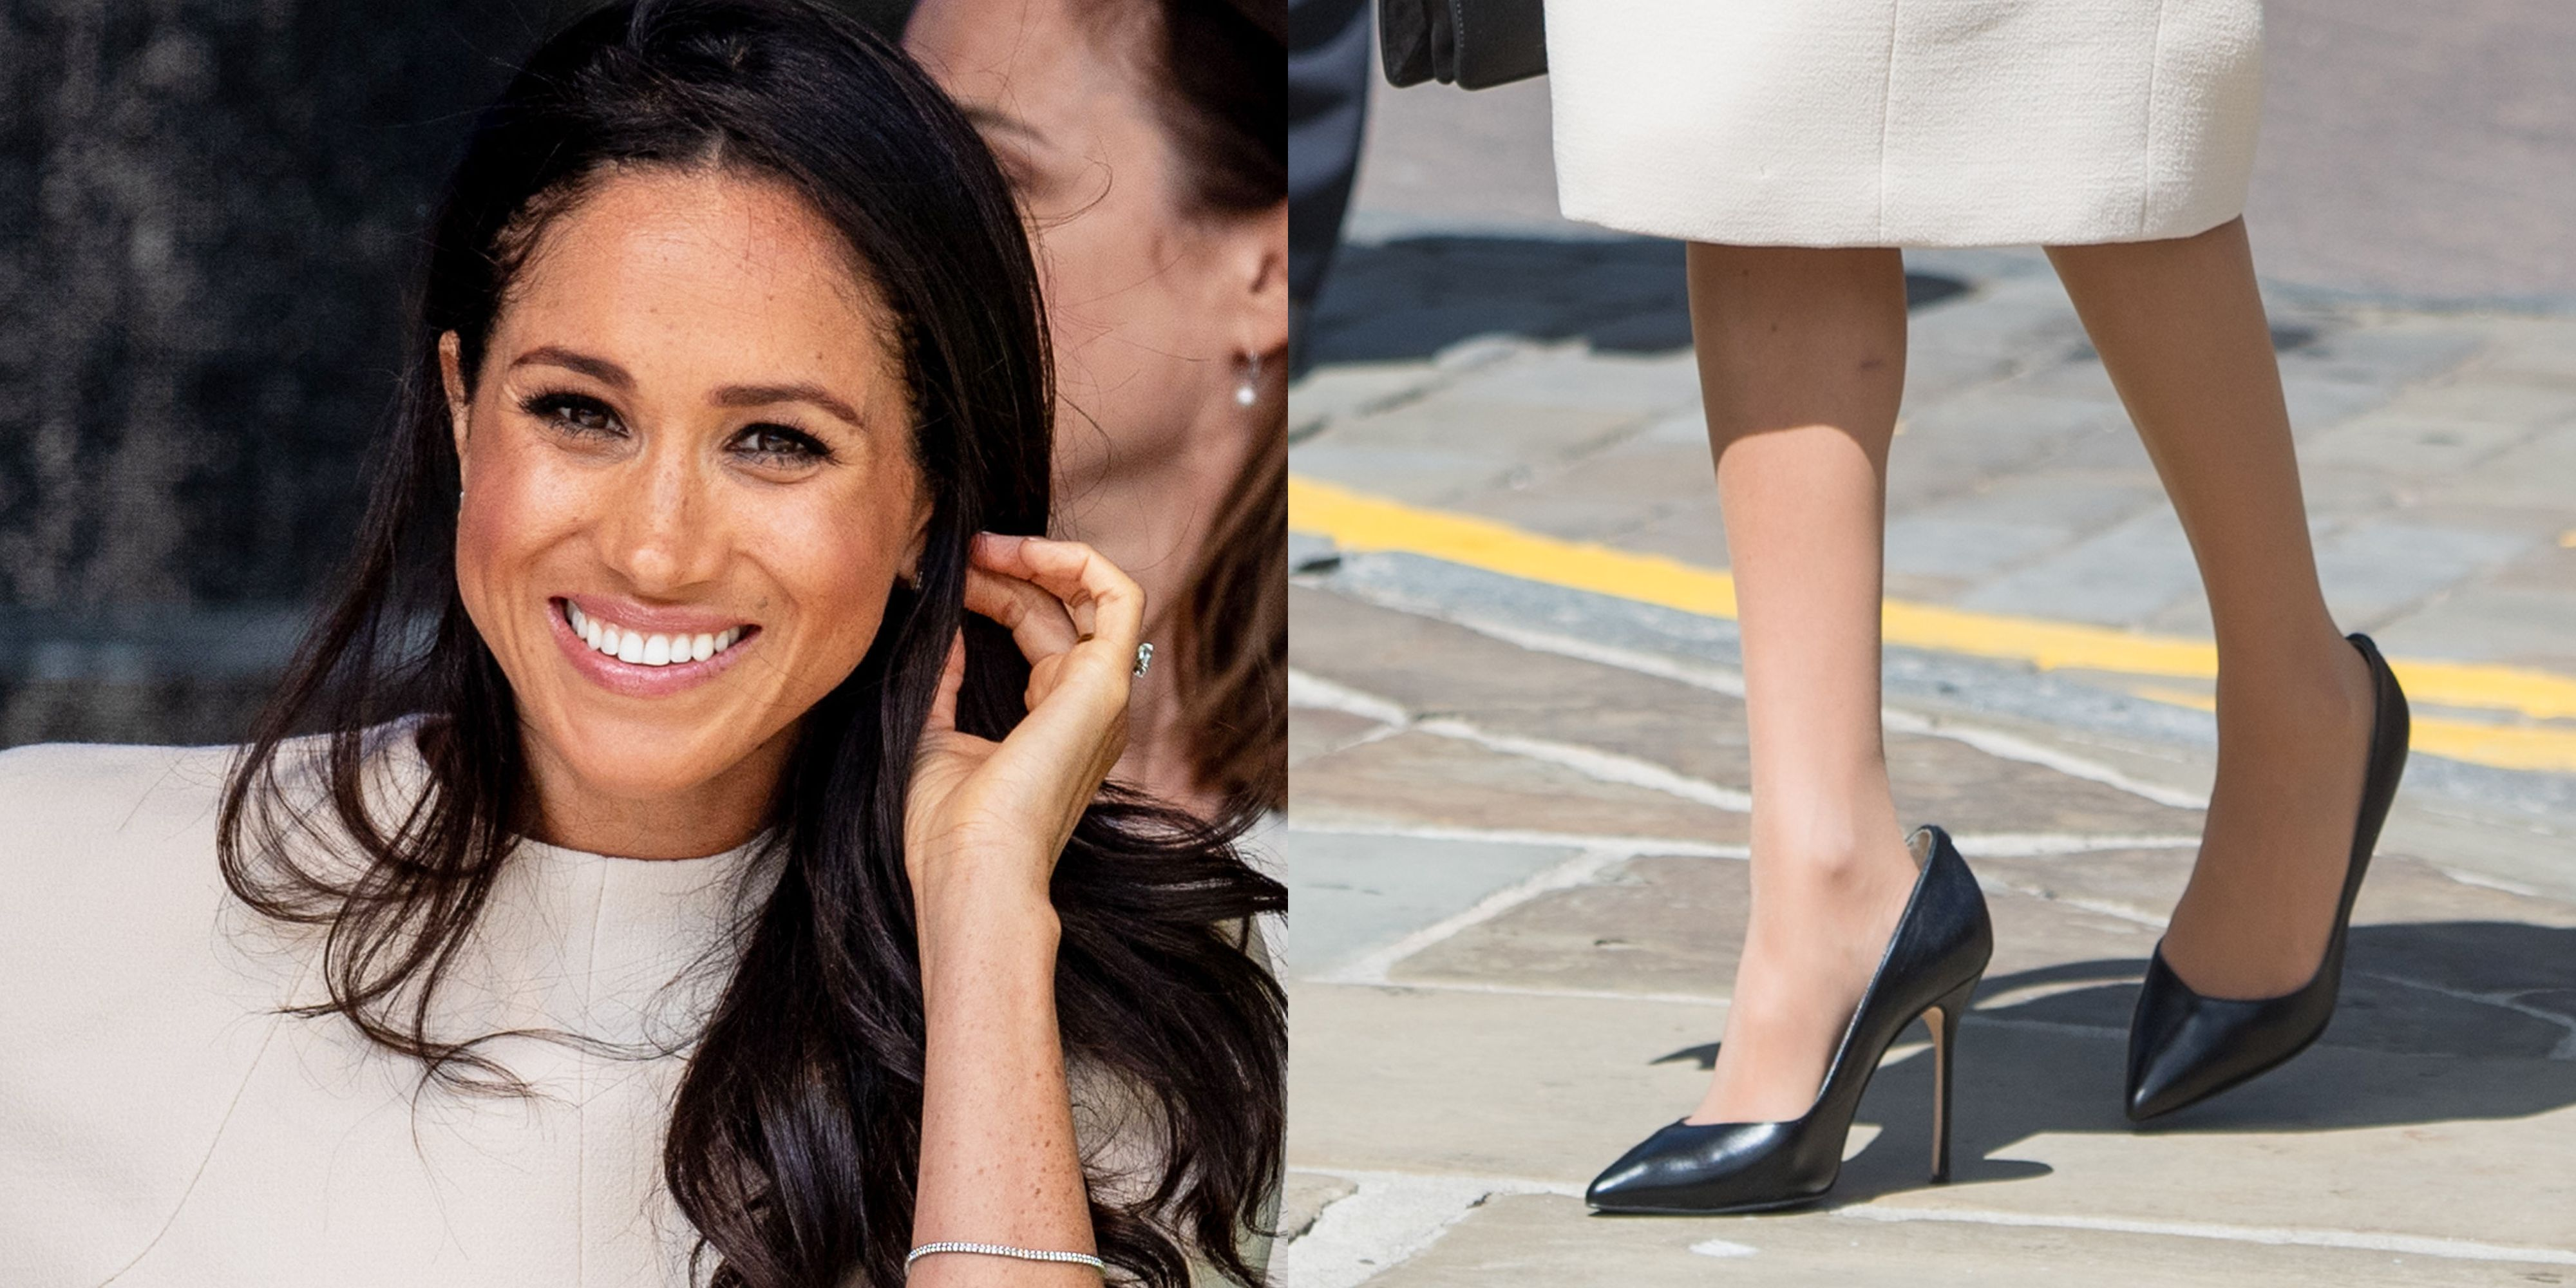 Why Supqzvm Too Markle Big Shoes Wears Are Meghan FKu3TlJc1